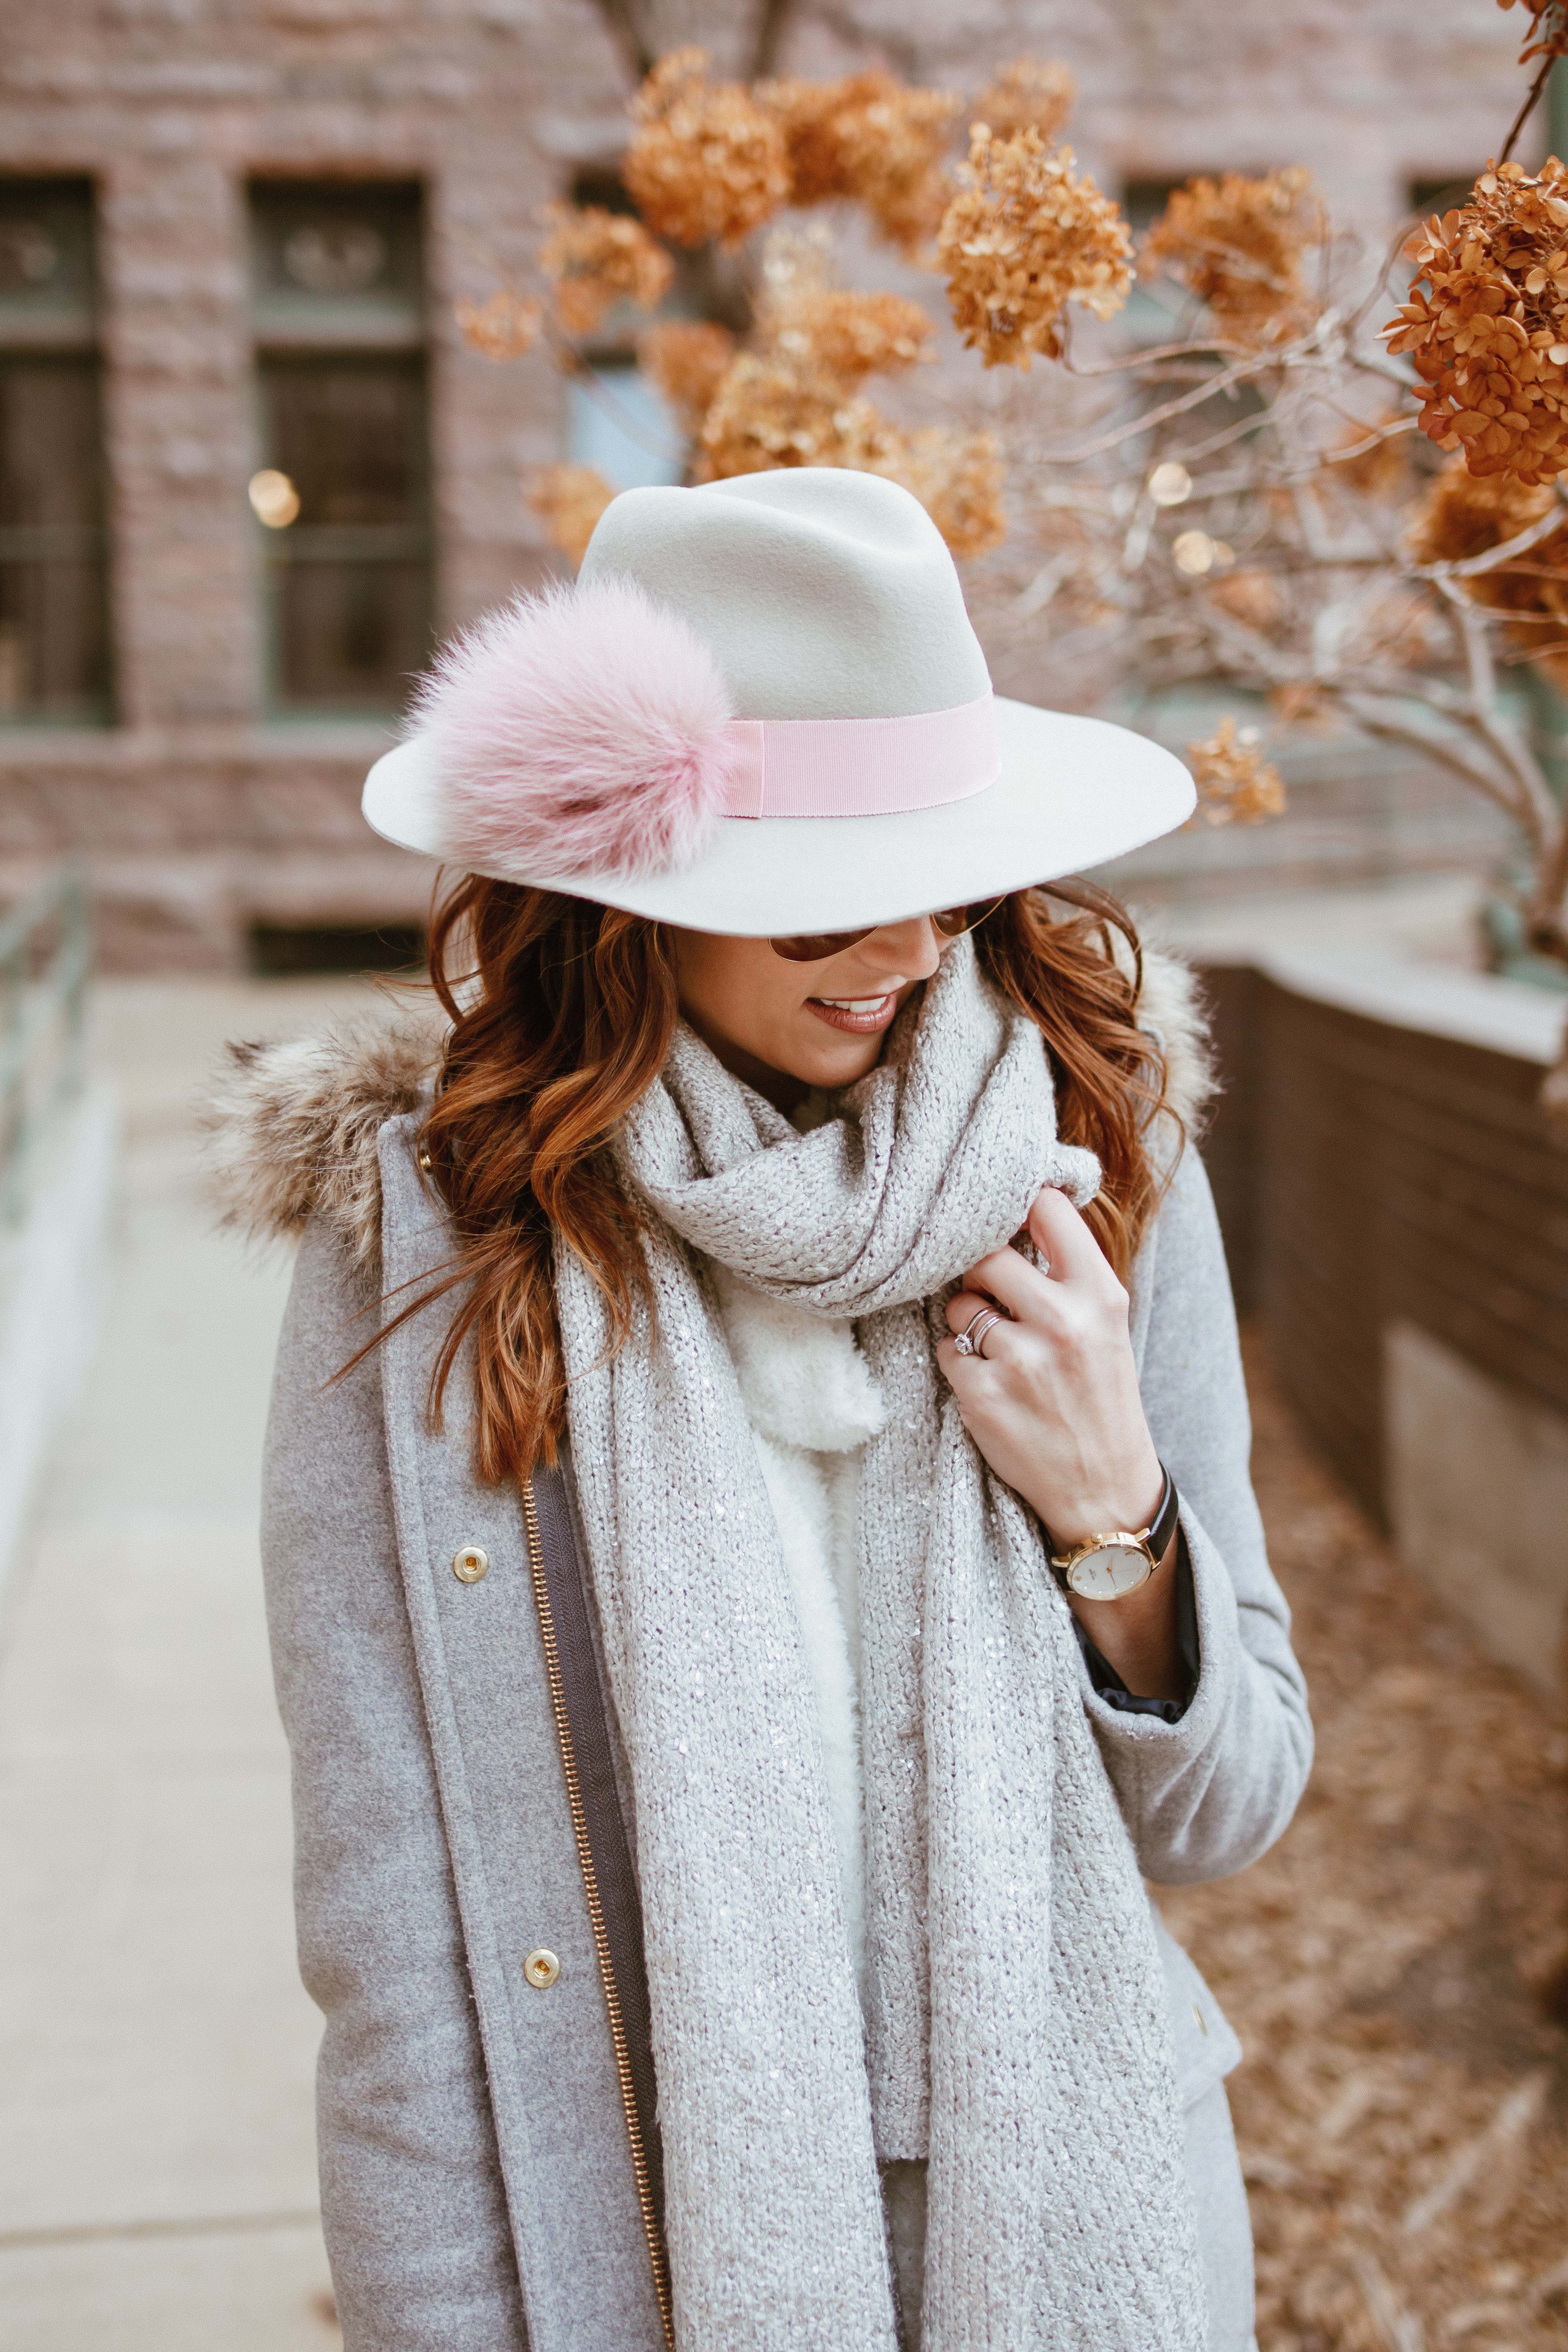 Hat - Midwest In Style